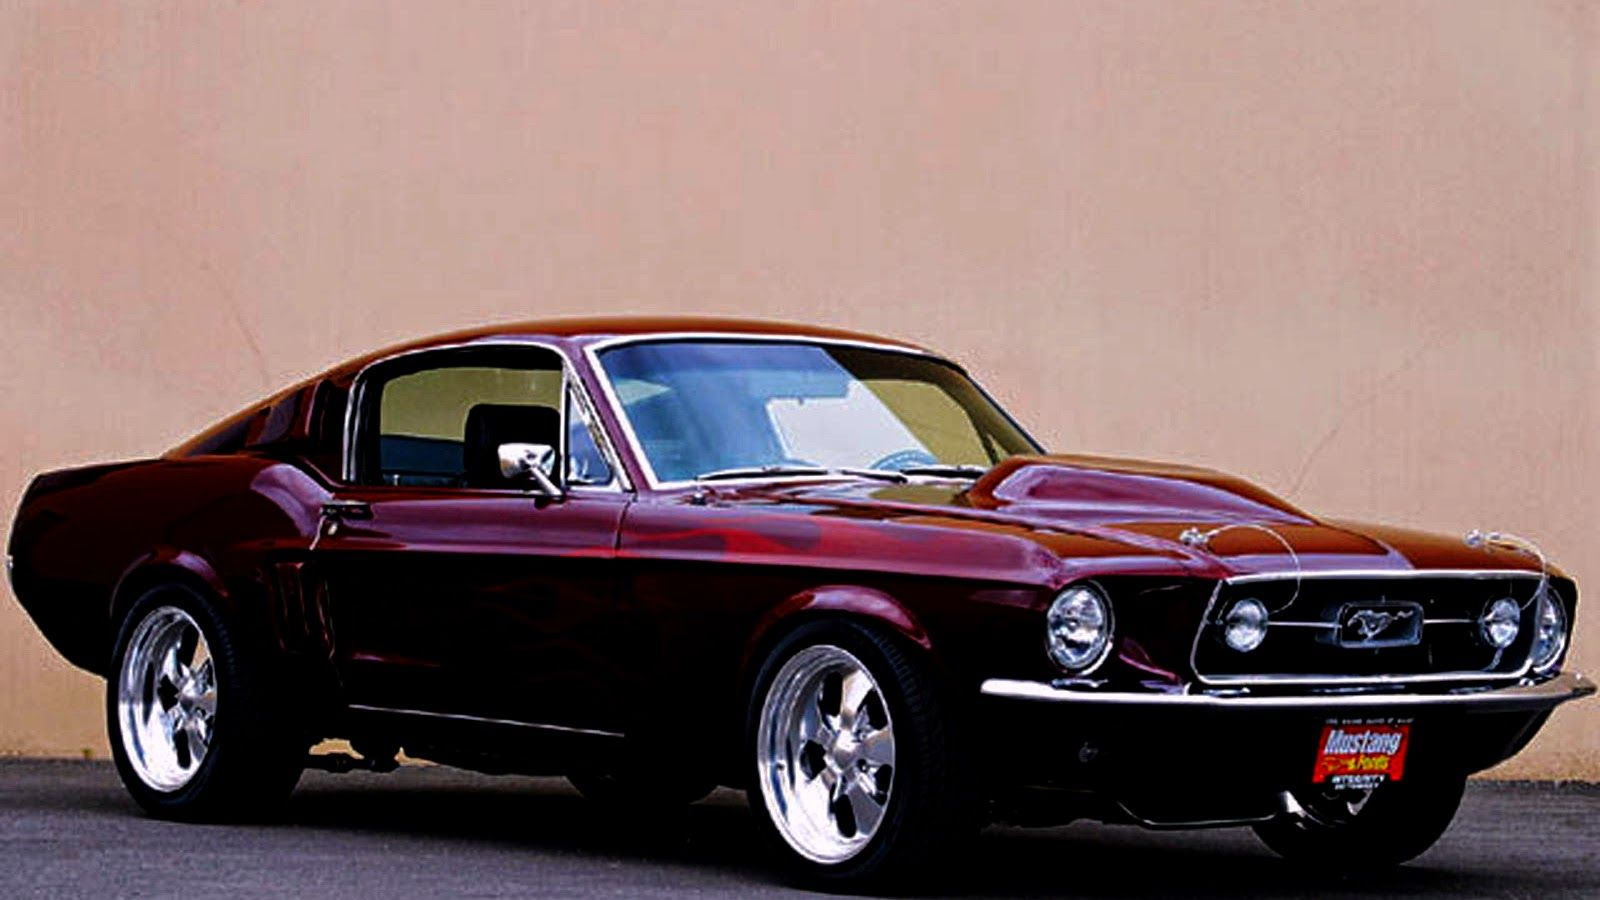 Ford mustang generations the fast and furious tokyo drift 1967